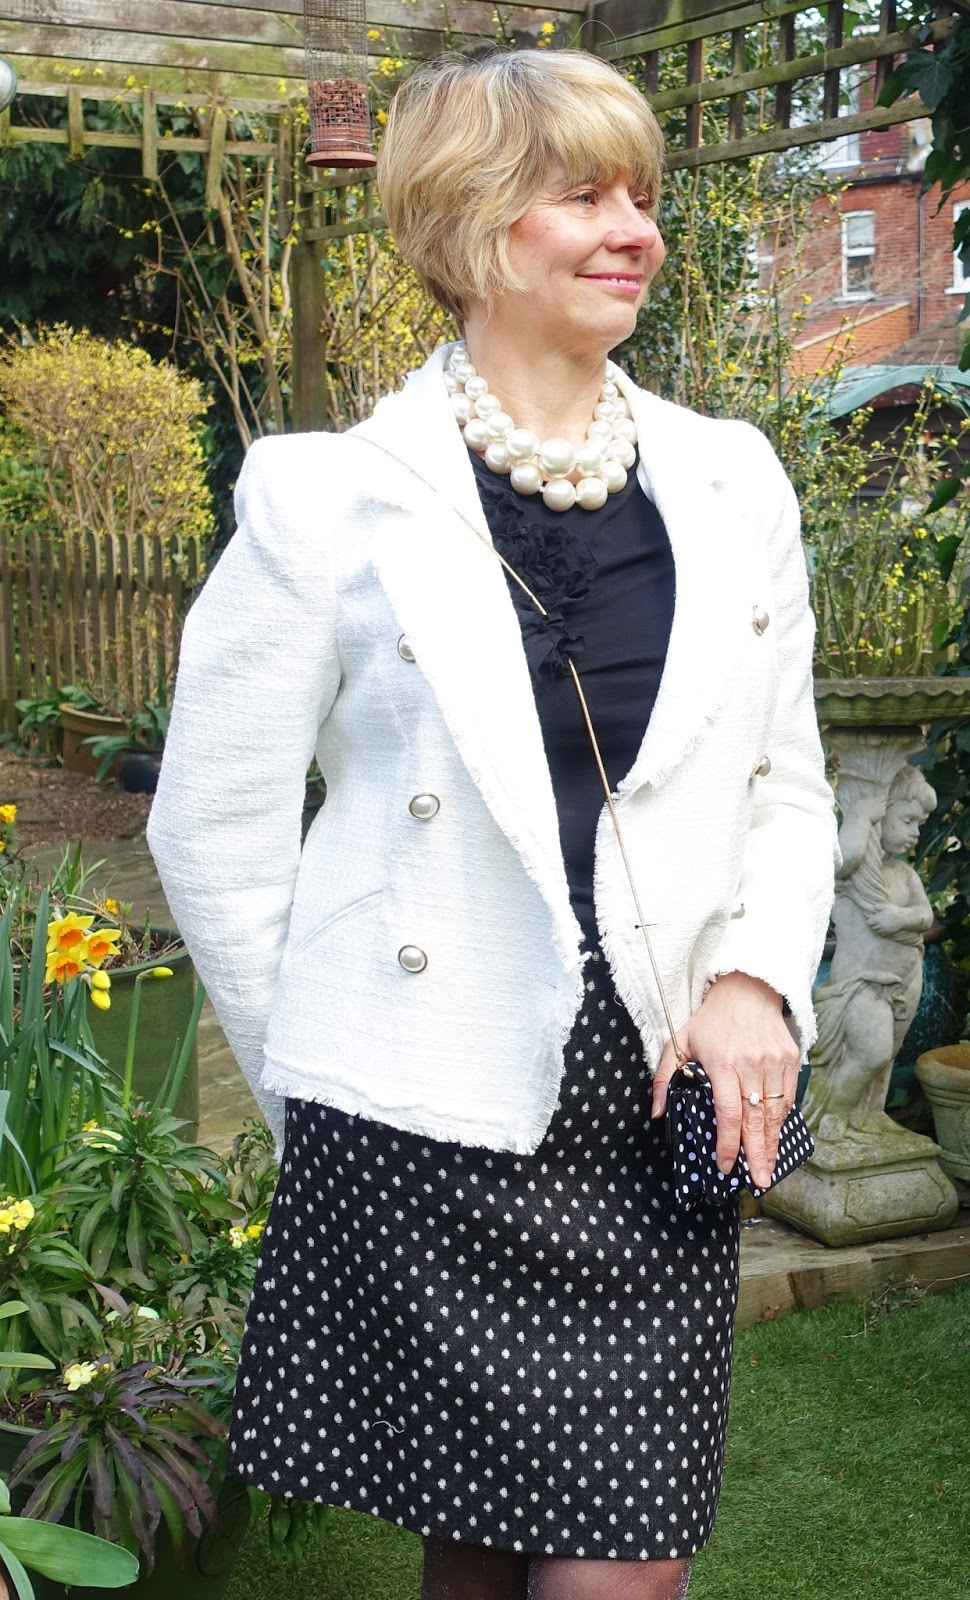 Image showing a woman in a spring garden wearing a white bouclé jjacket with polka dot skirt, shoes and bag